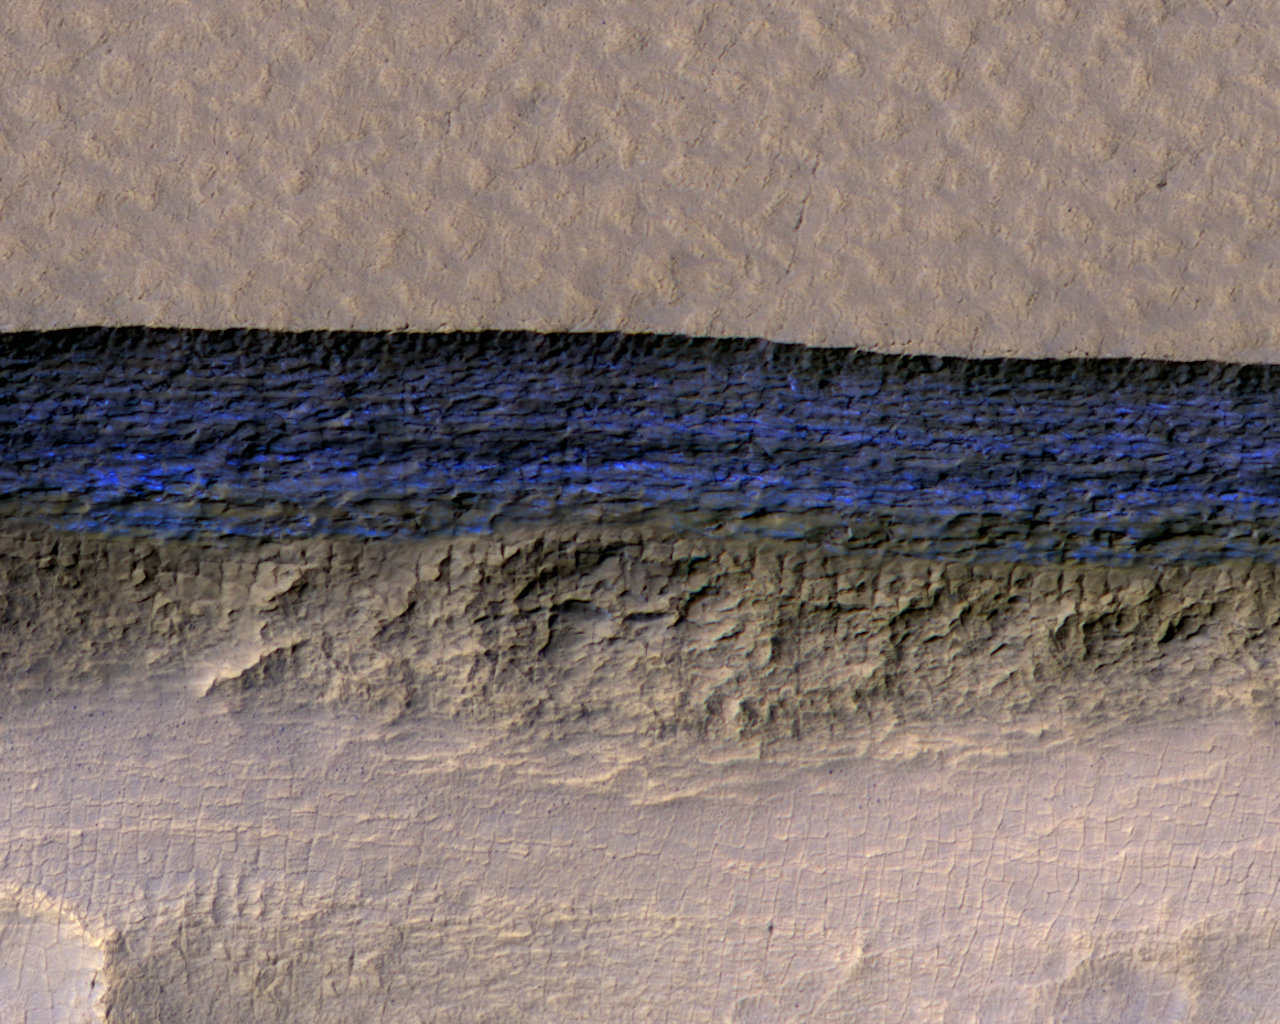 Huge Sheets of Ice Found Hidden Just Beneath the Surface of Mars - Universe Today